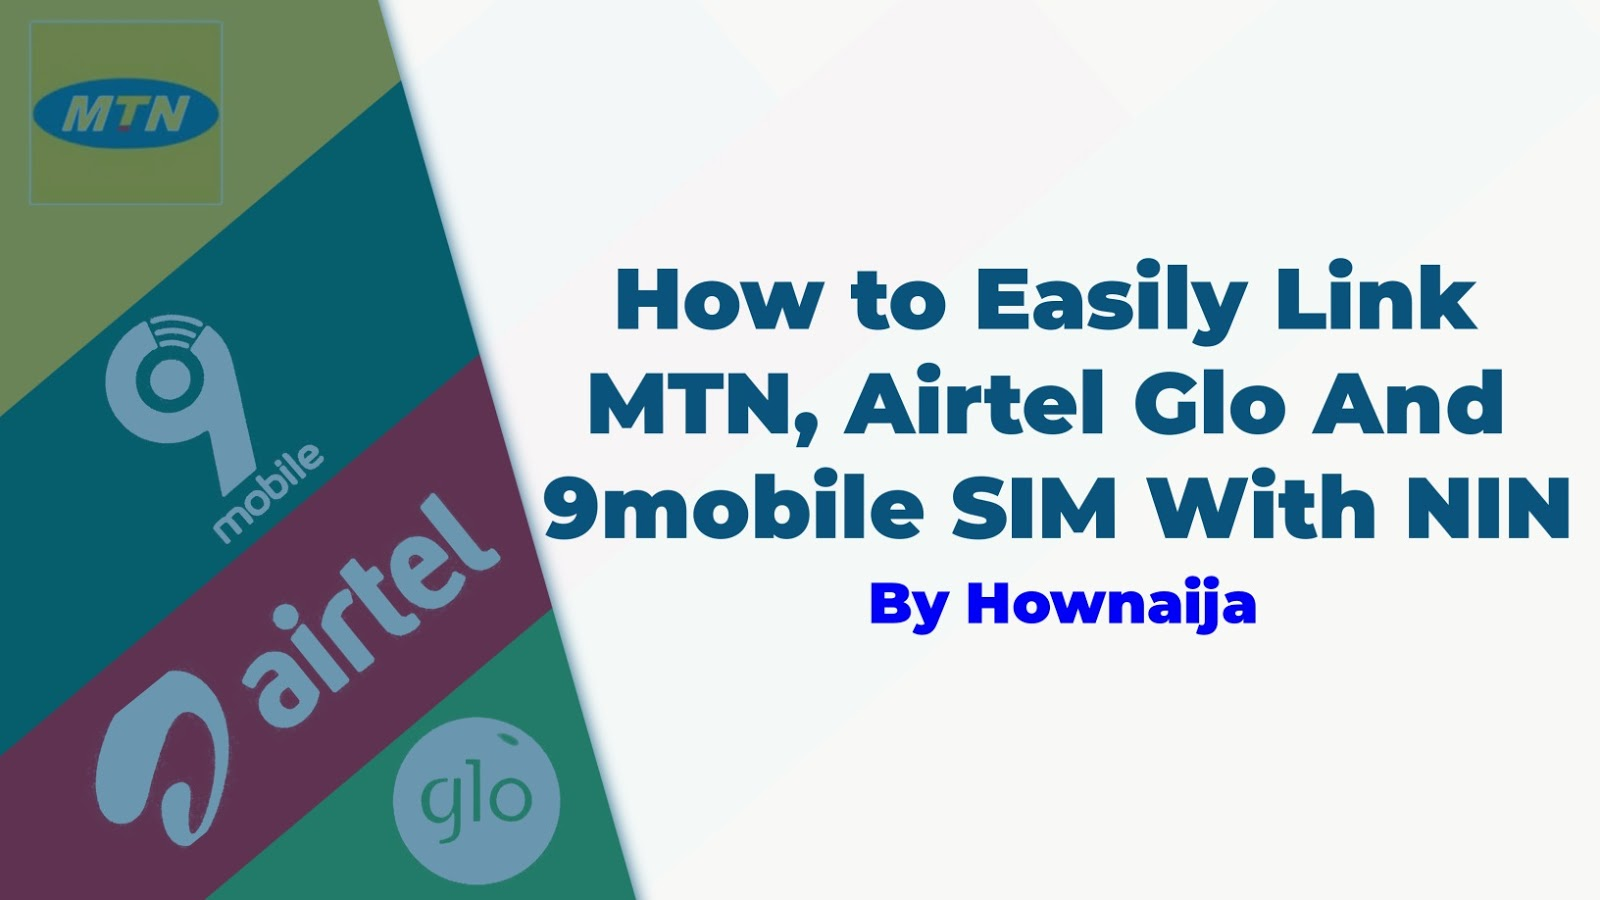 How to Easily Link MTN, Airtel Glo And 9mobile SIM With NIN